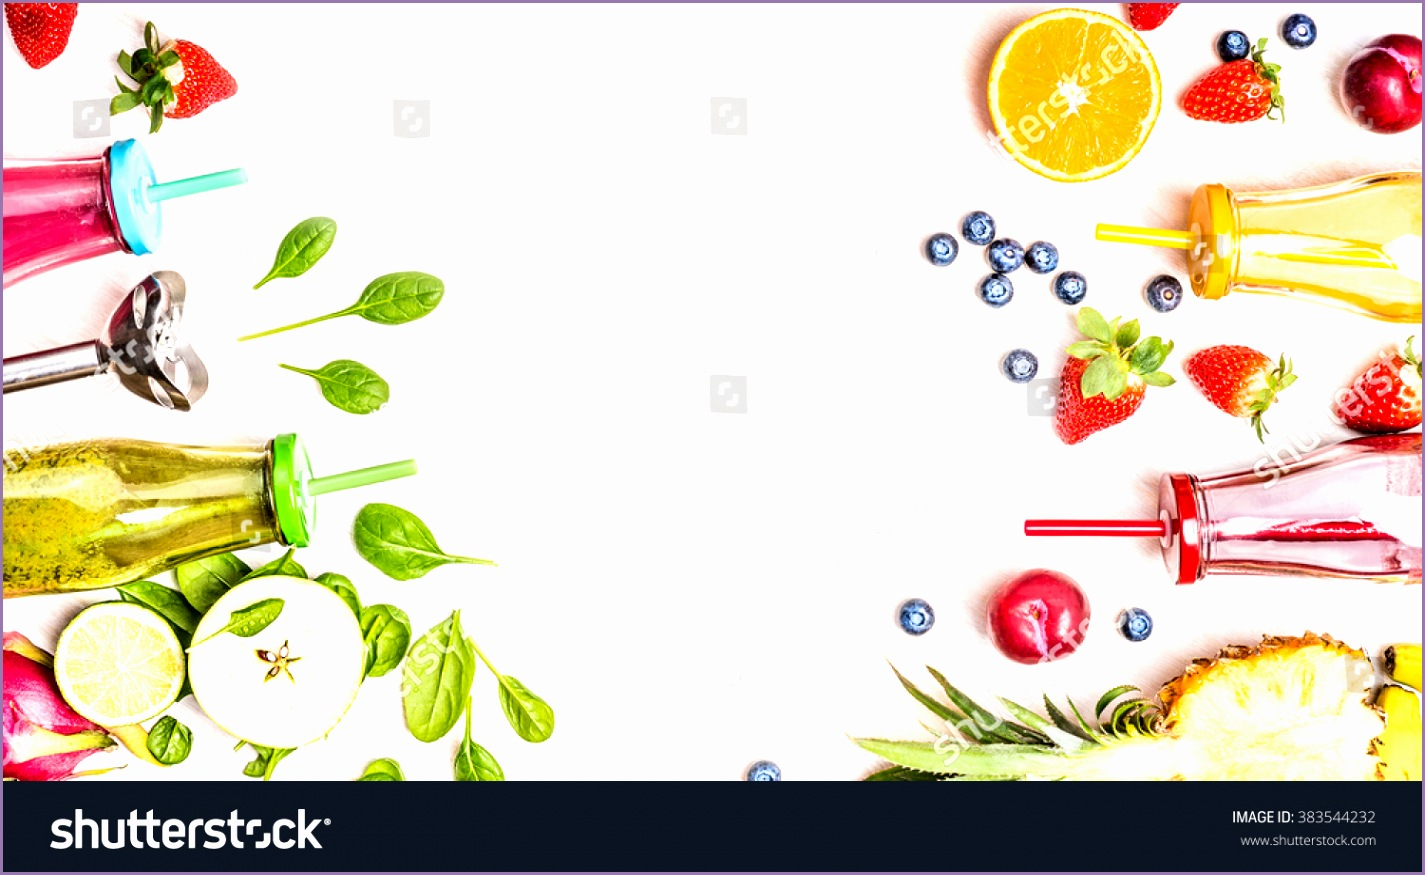 healthy lifestyle background various colorful smoothie src=d4y3ox04ArTYCinkohVlgQ 1 86